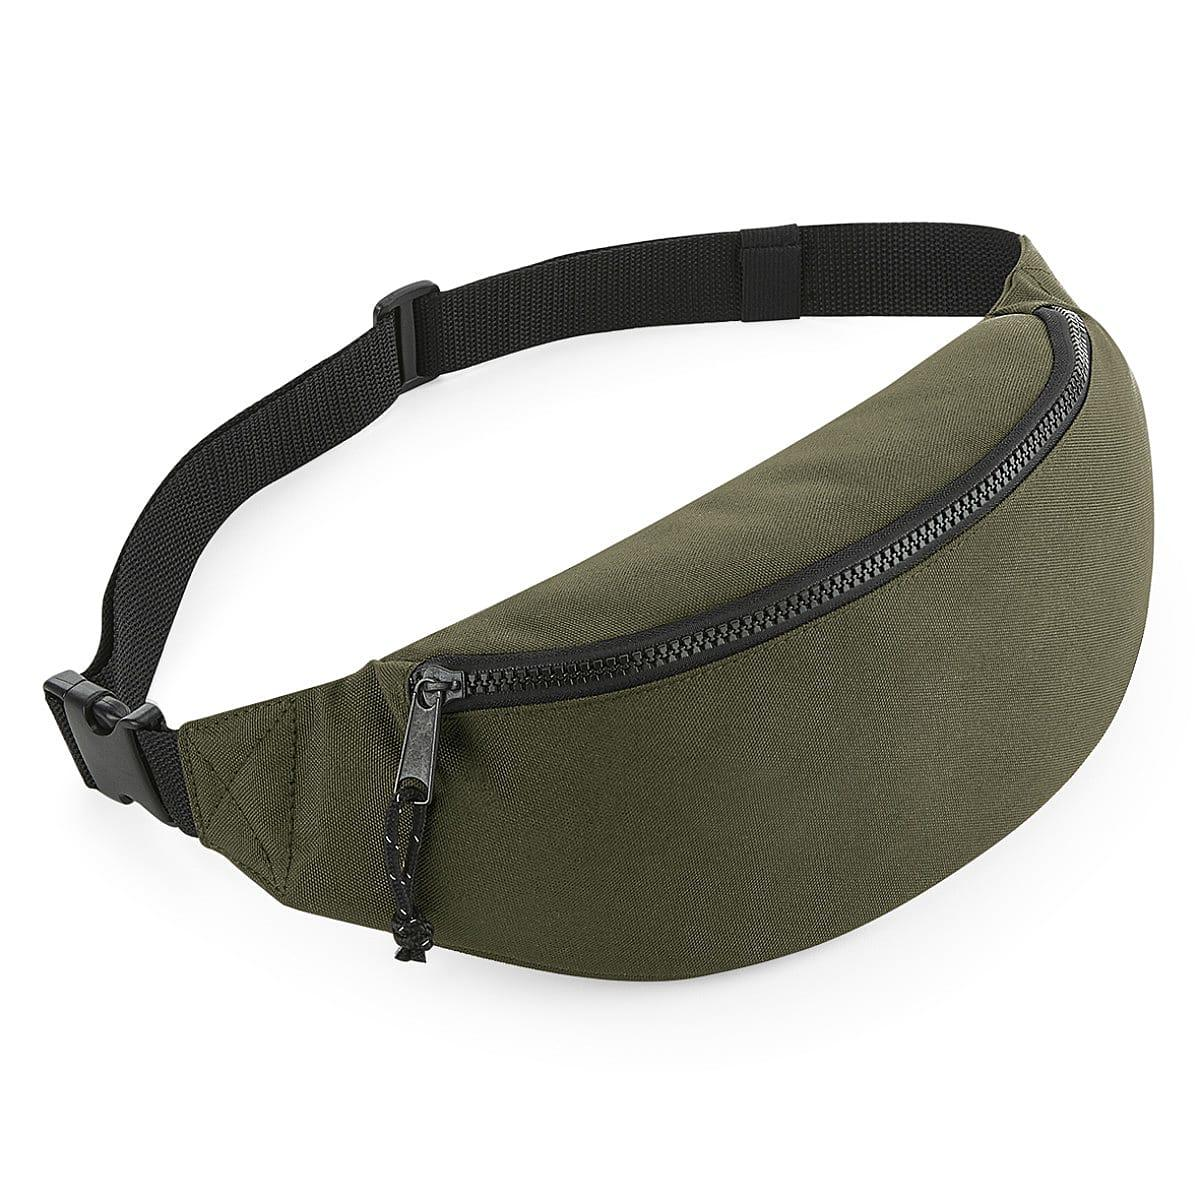 Bagbase Recycled Waistpack in Military Green (Product Code: BG282)